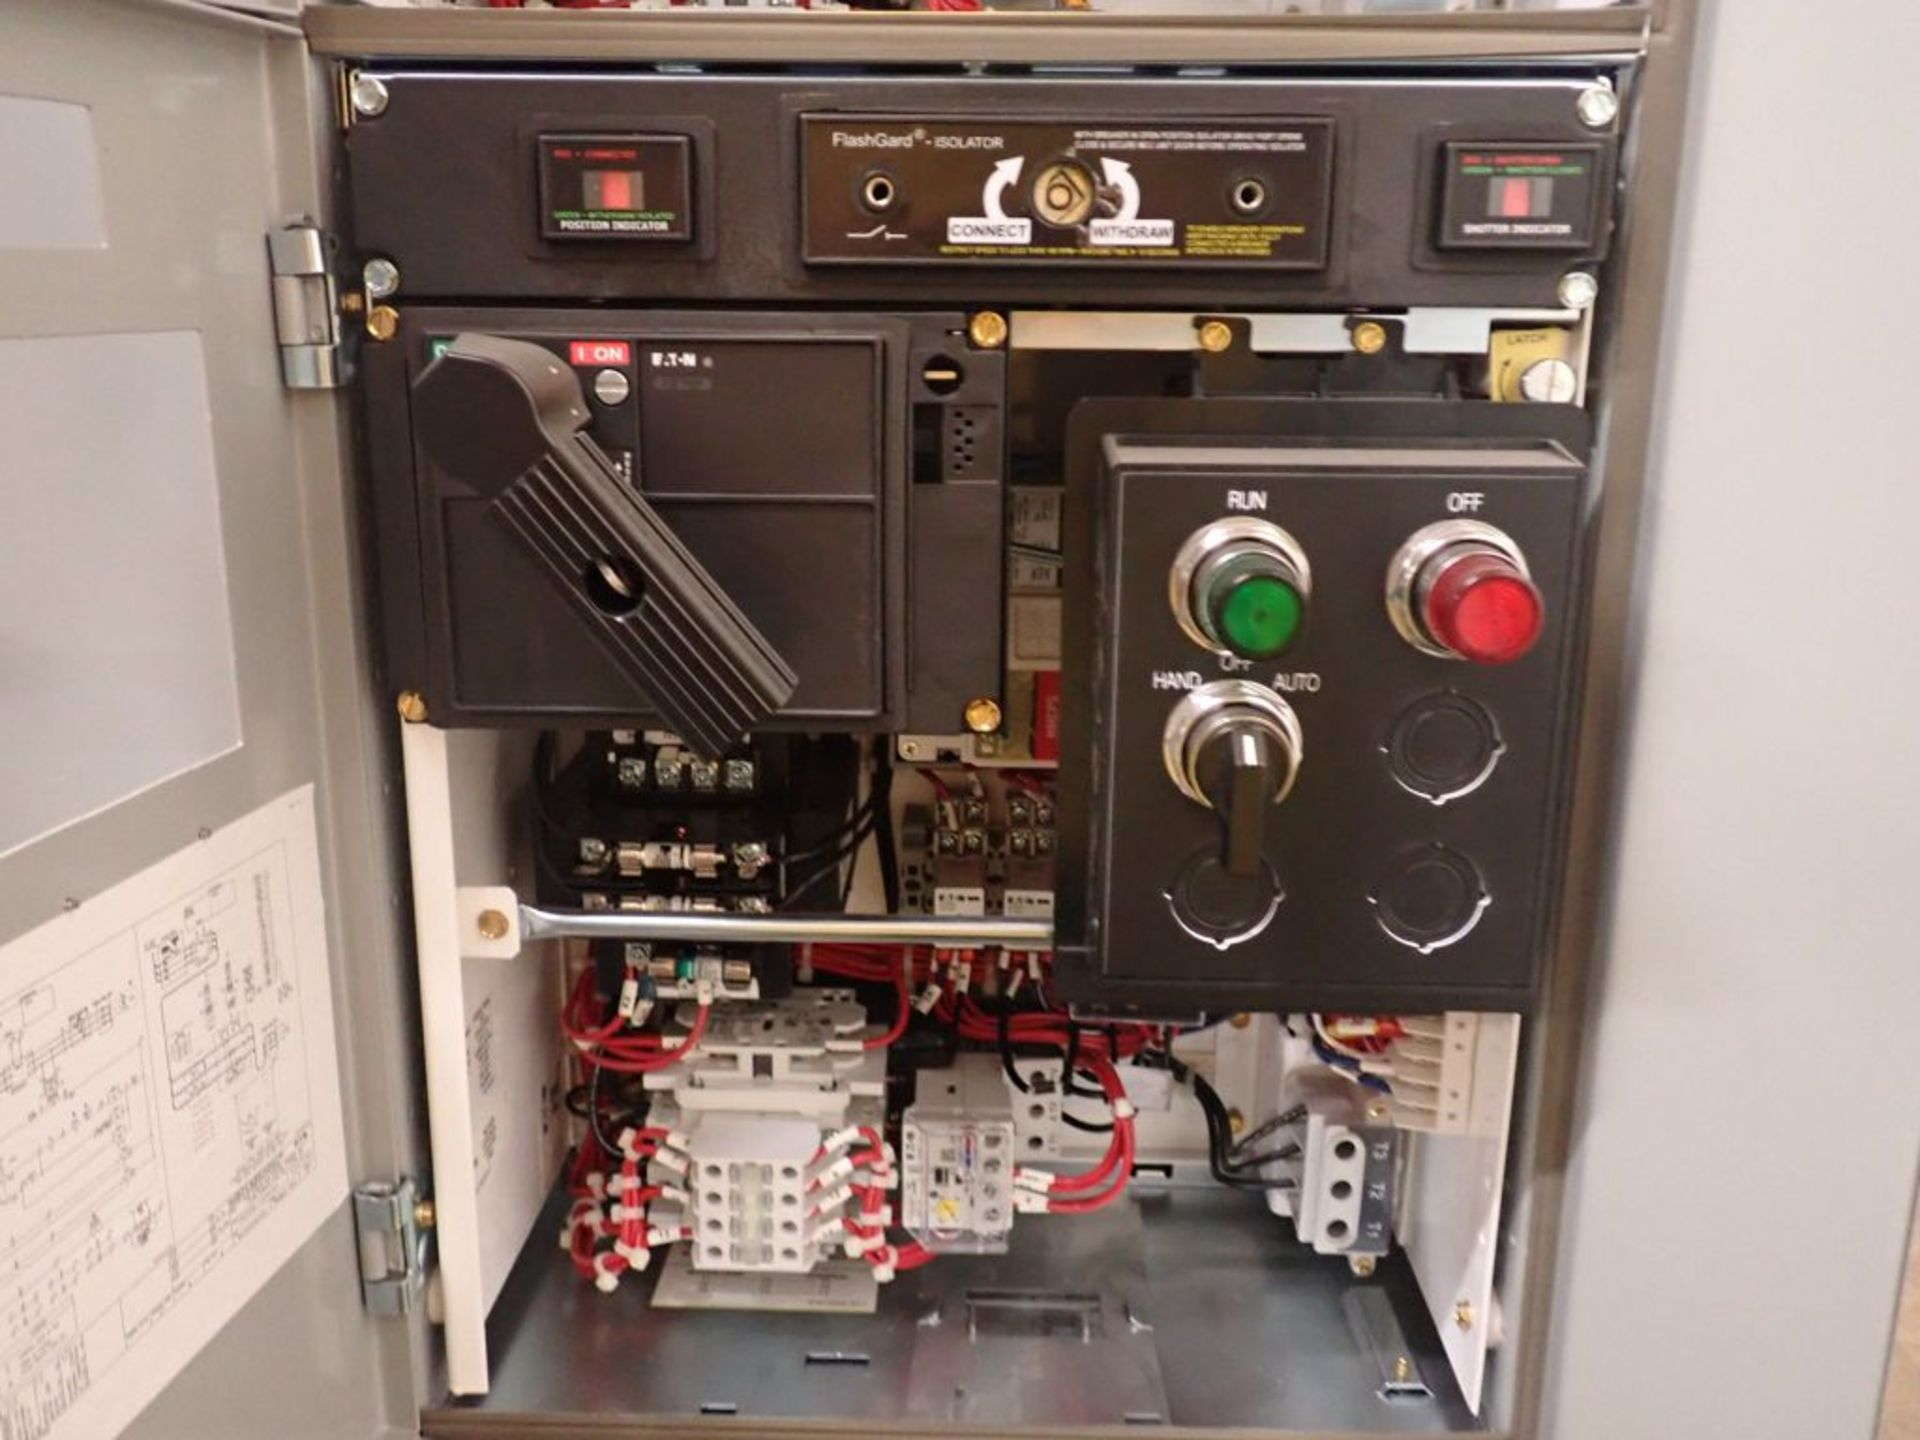 Eaton Freedom Flashgard Motor Control Center w/Components | (5) F206-15A-10HP; (4) F206-30A-10HP; ( - Image 75 of 84